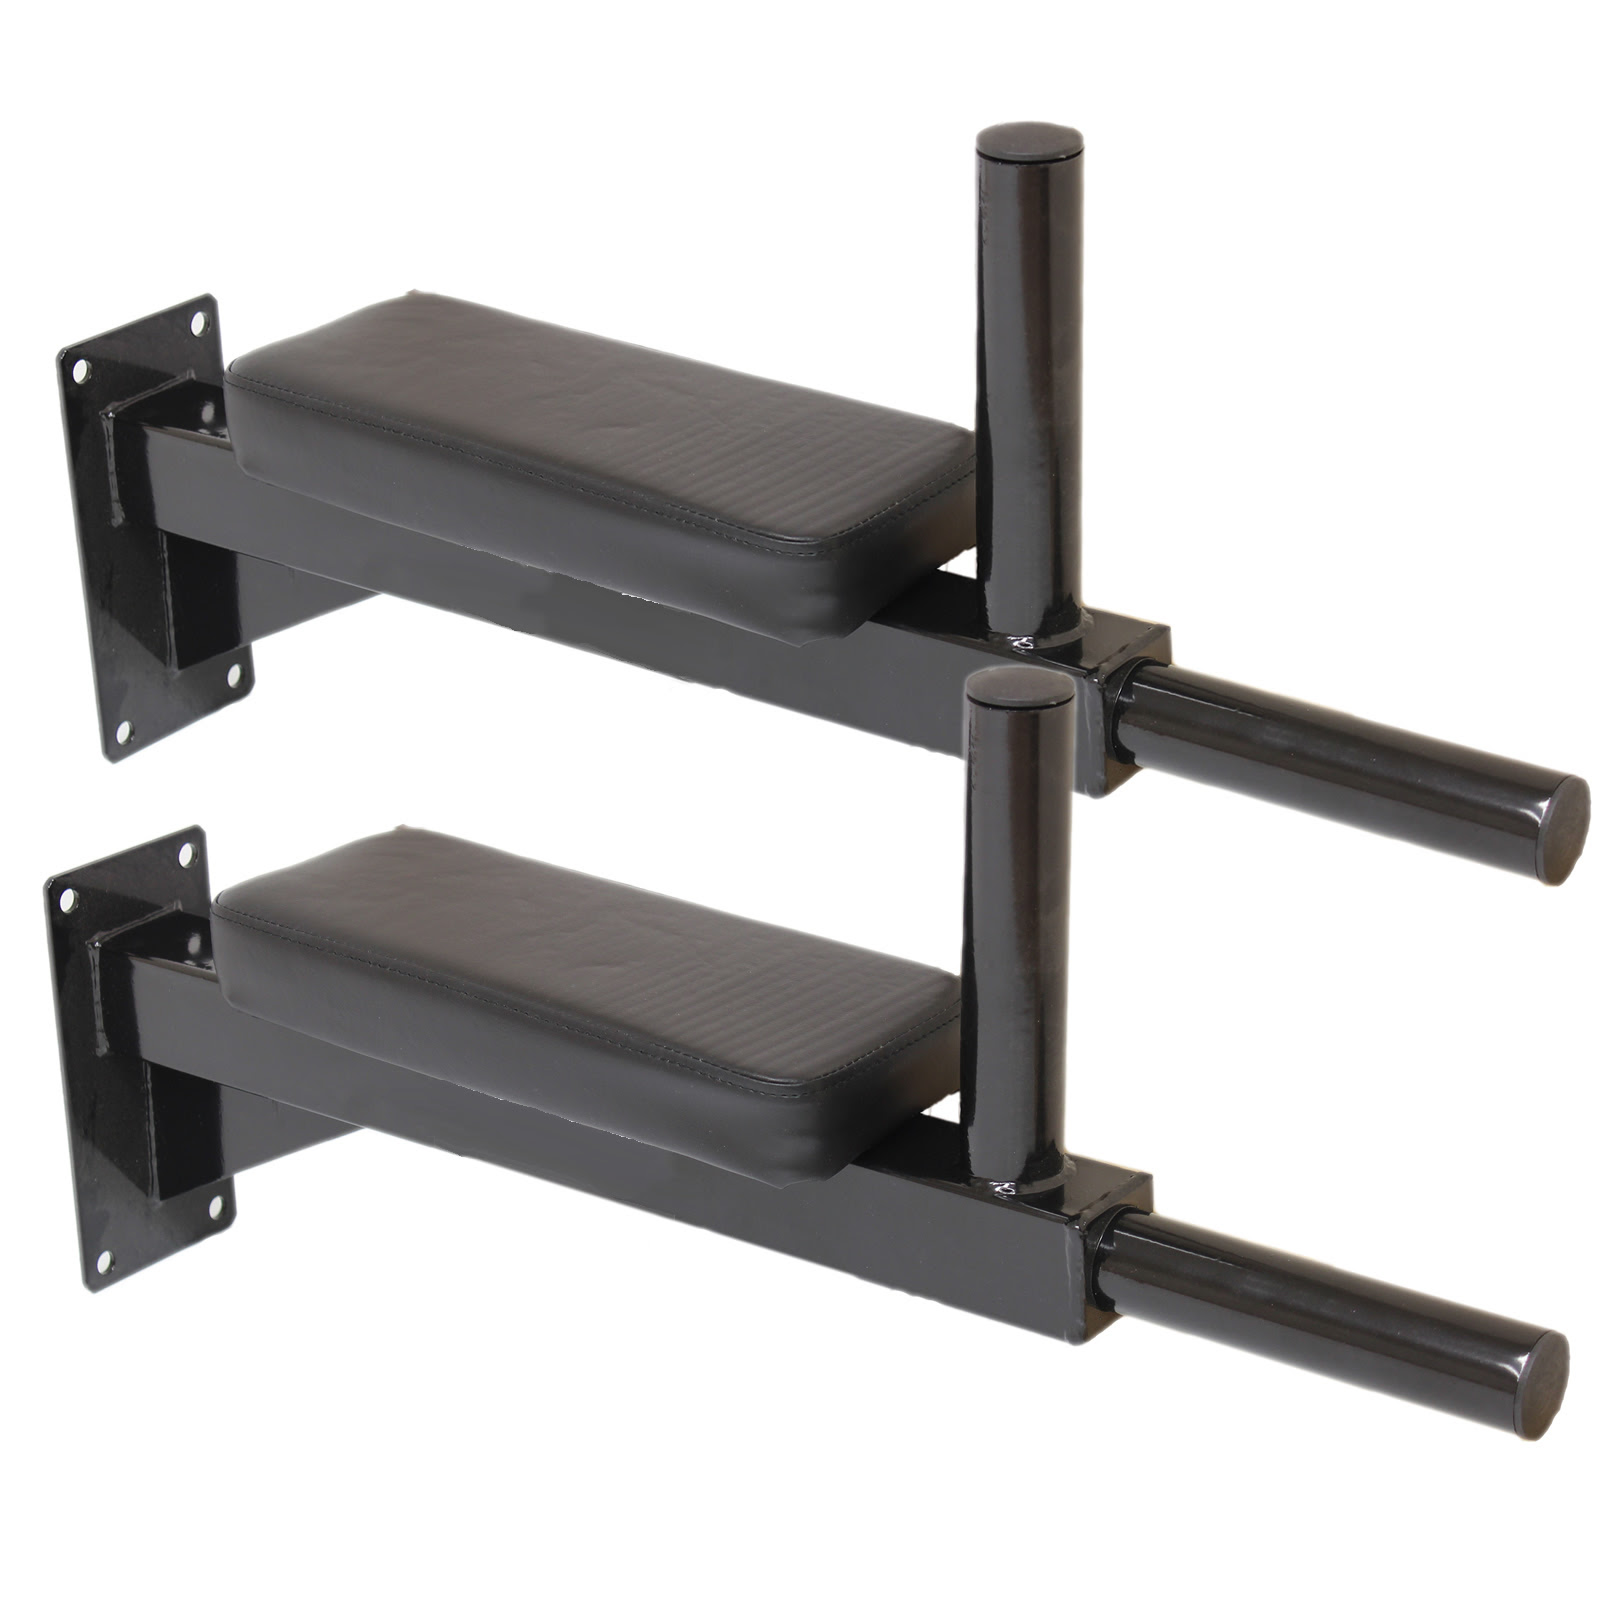 MAX FITNESS WALL MOUNTED DIP STATION KNEE RAISE BARS ABS ...